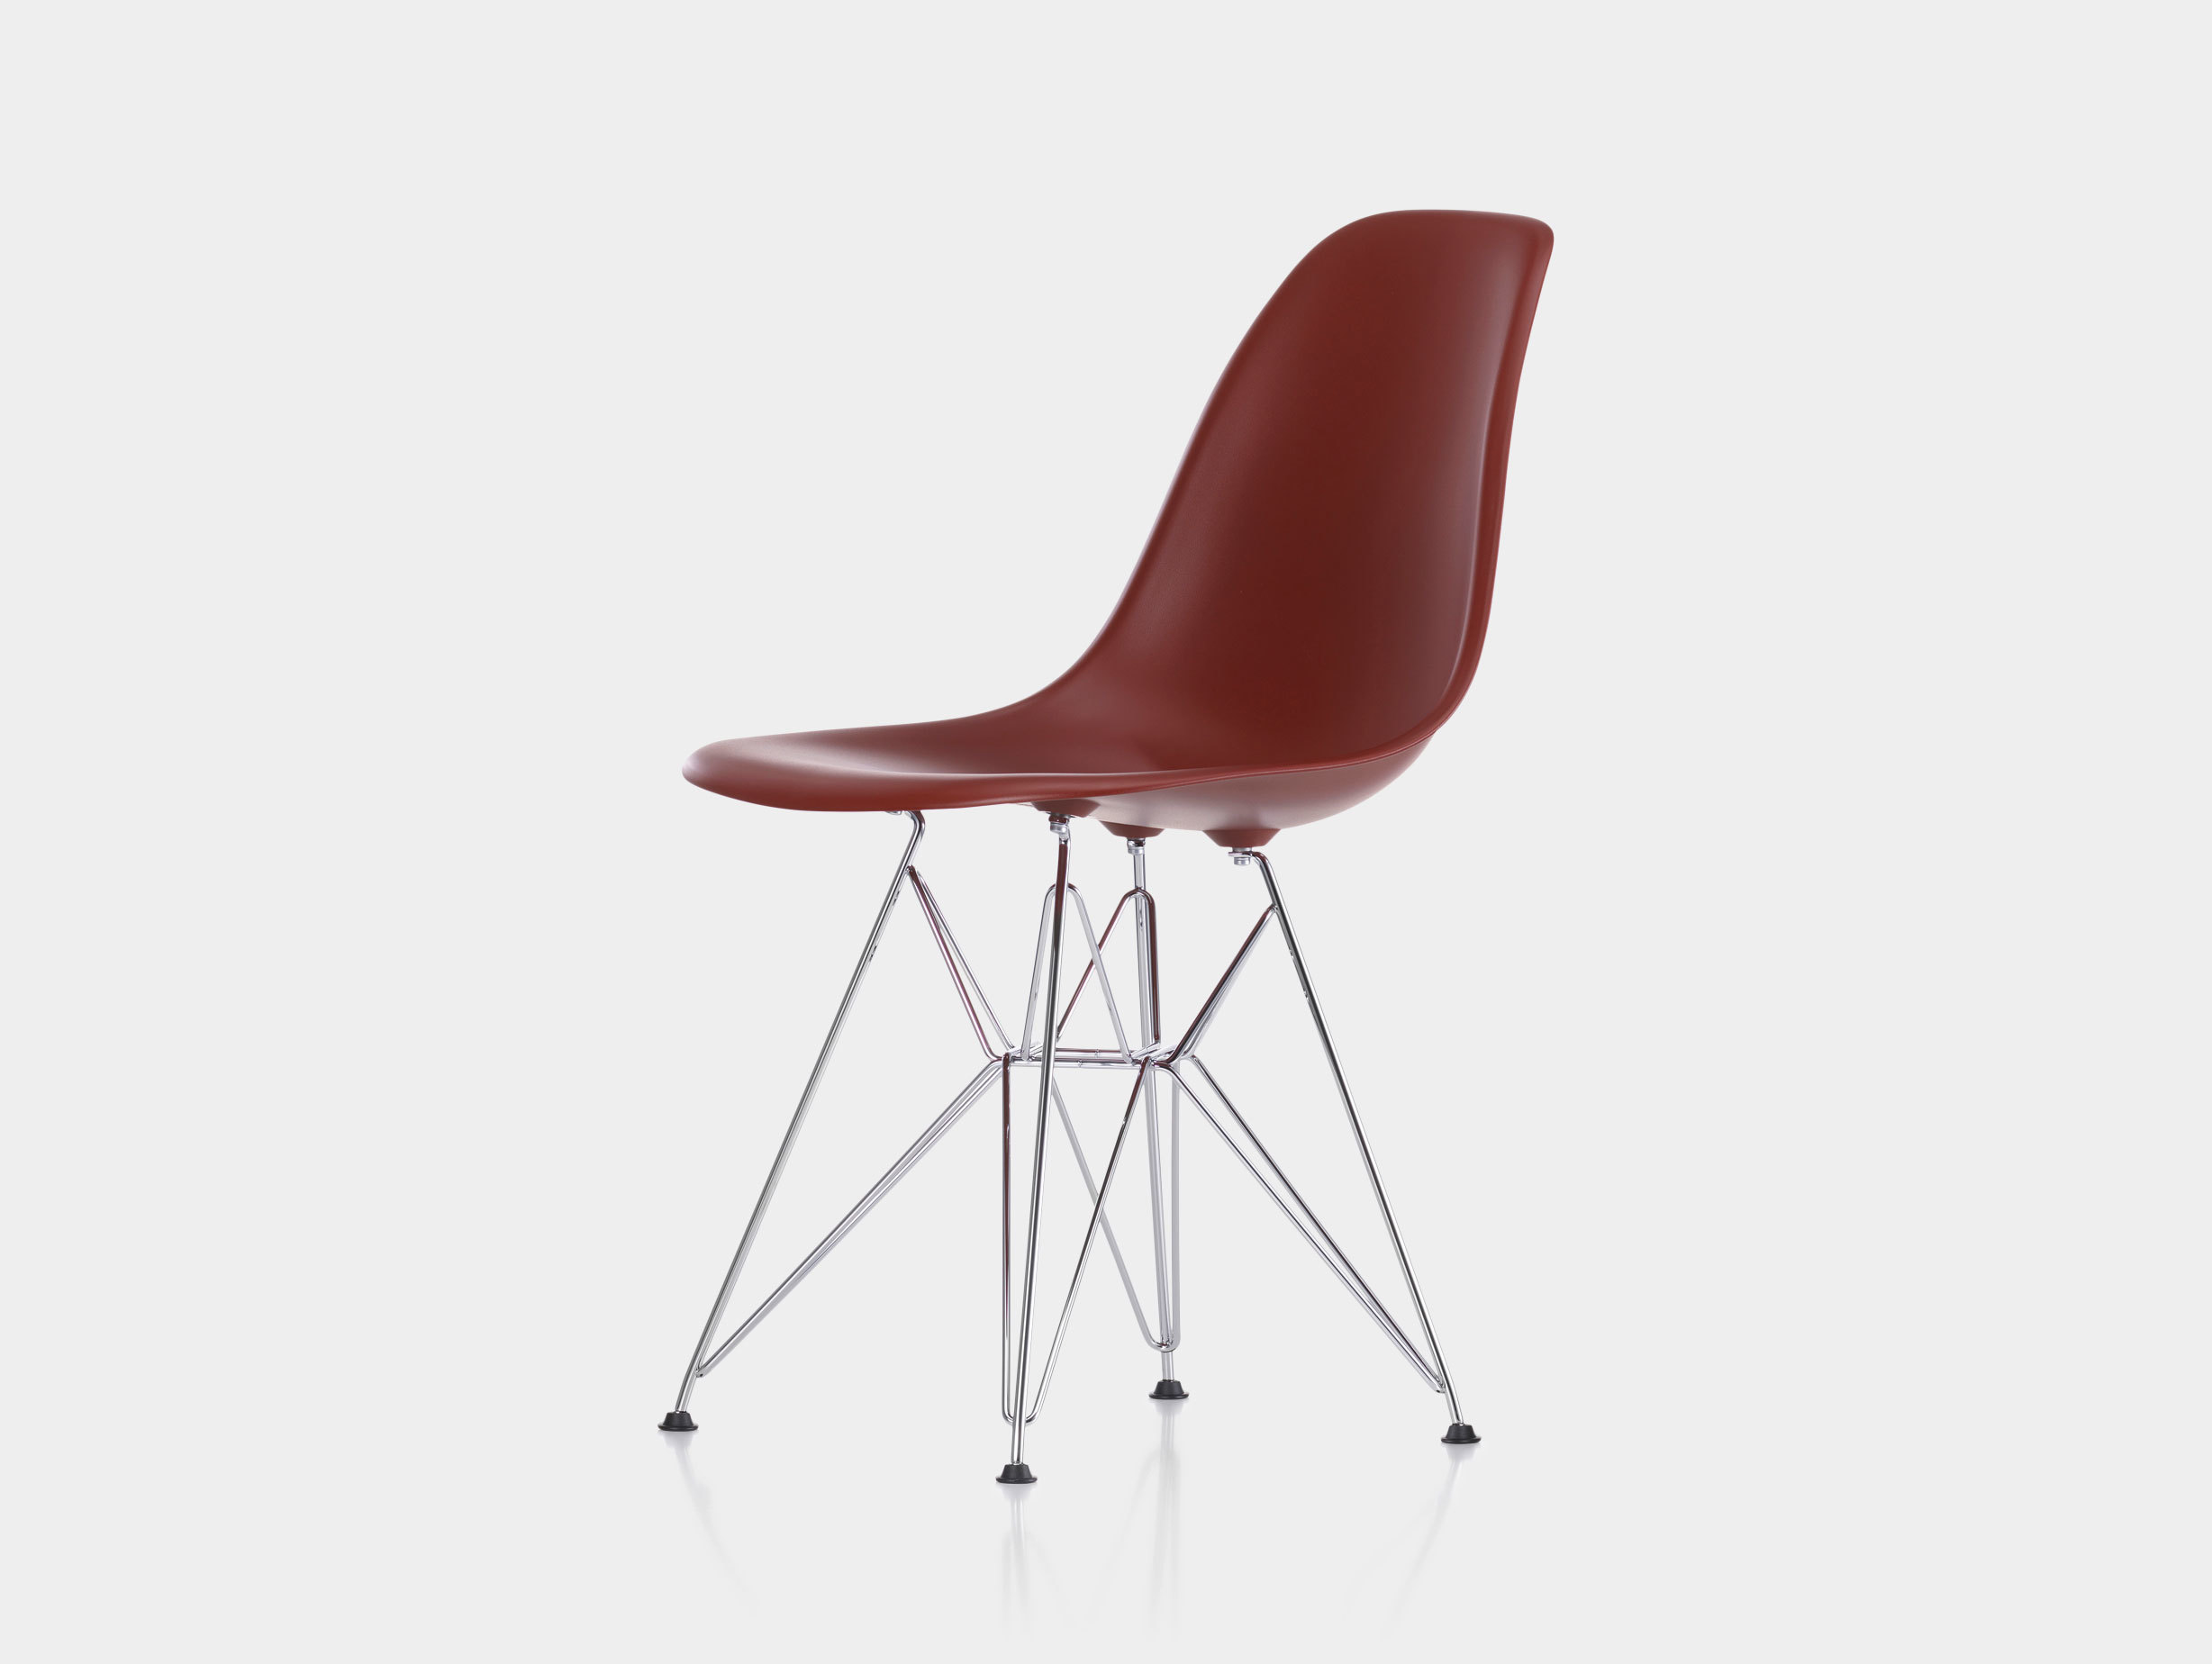 Eames DSR Plastic Side Chair image 1